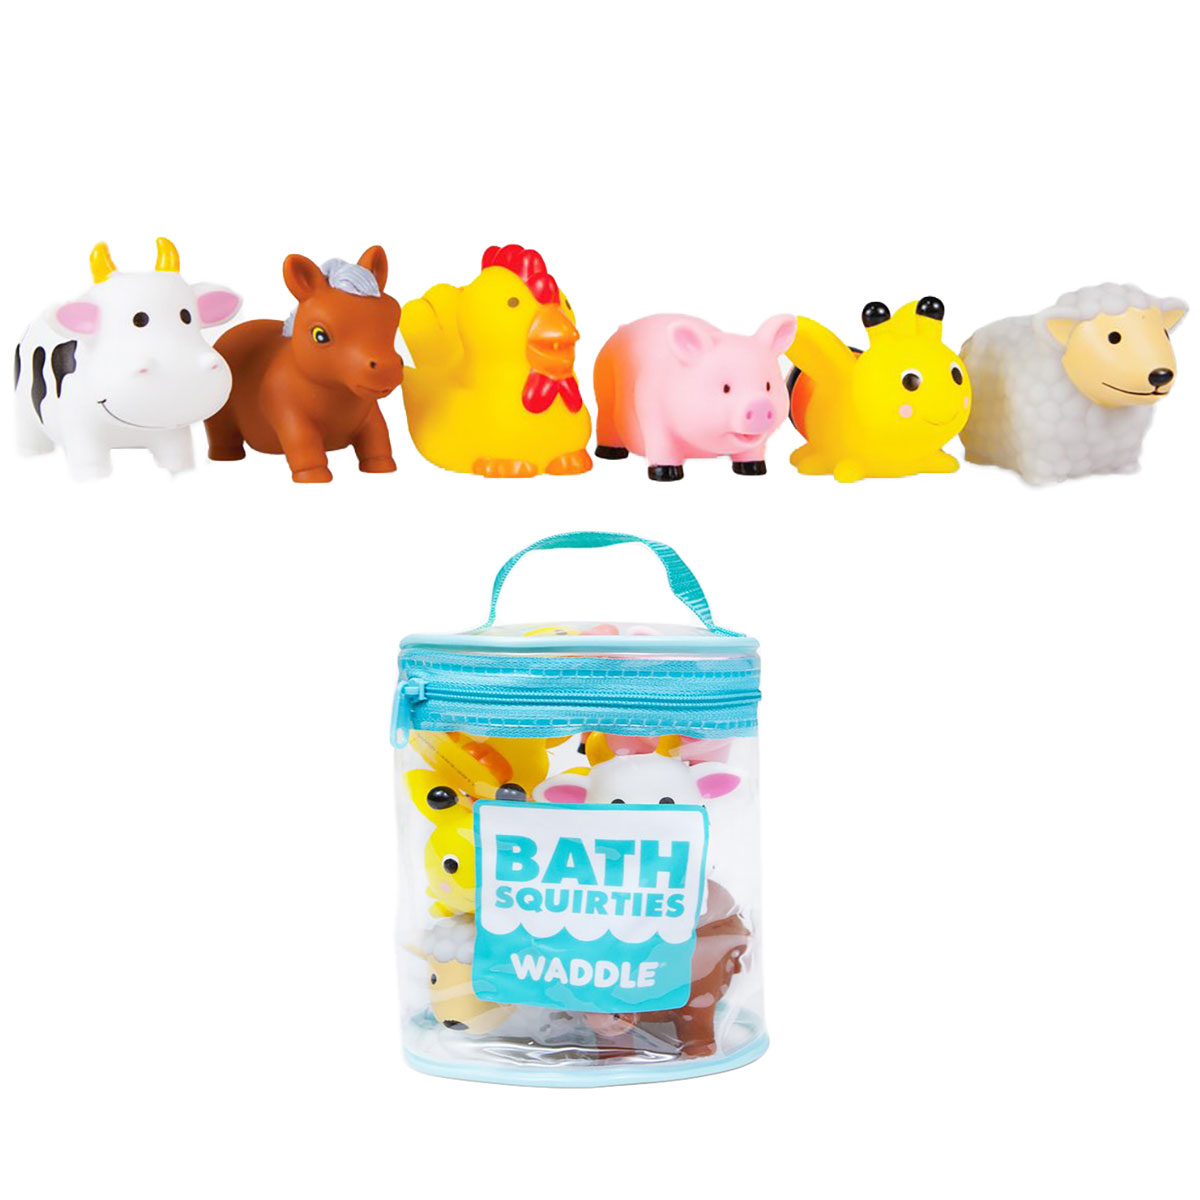 Waddle Bathtime Toys Farm Animal Bath Toy Squirters Cow Pig sheep Horse and More by Waddle and Friends